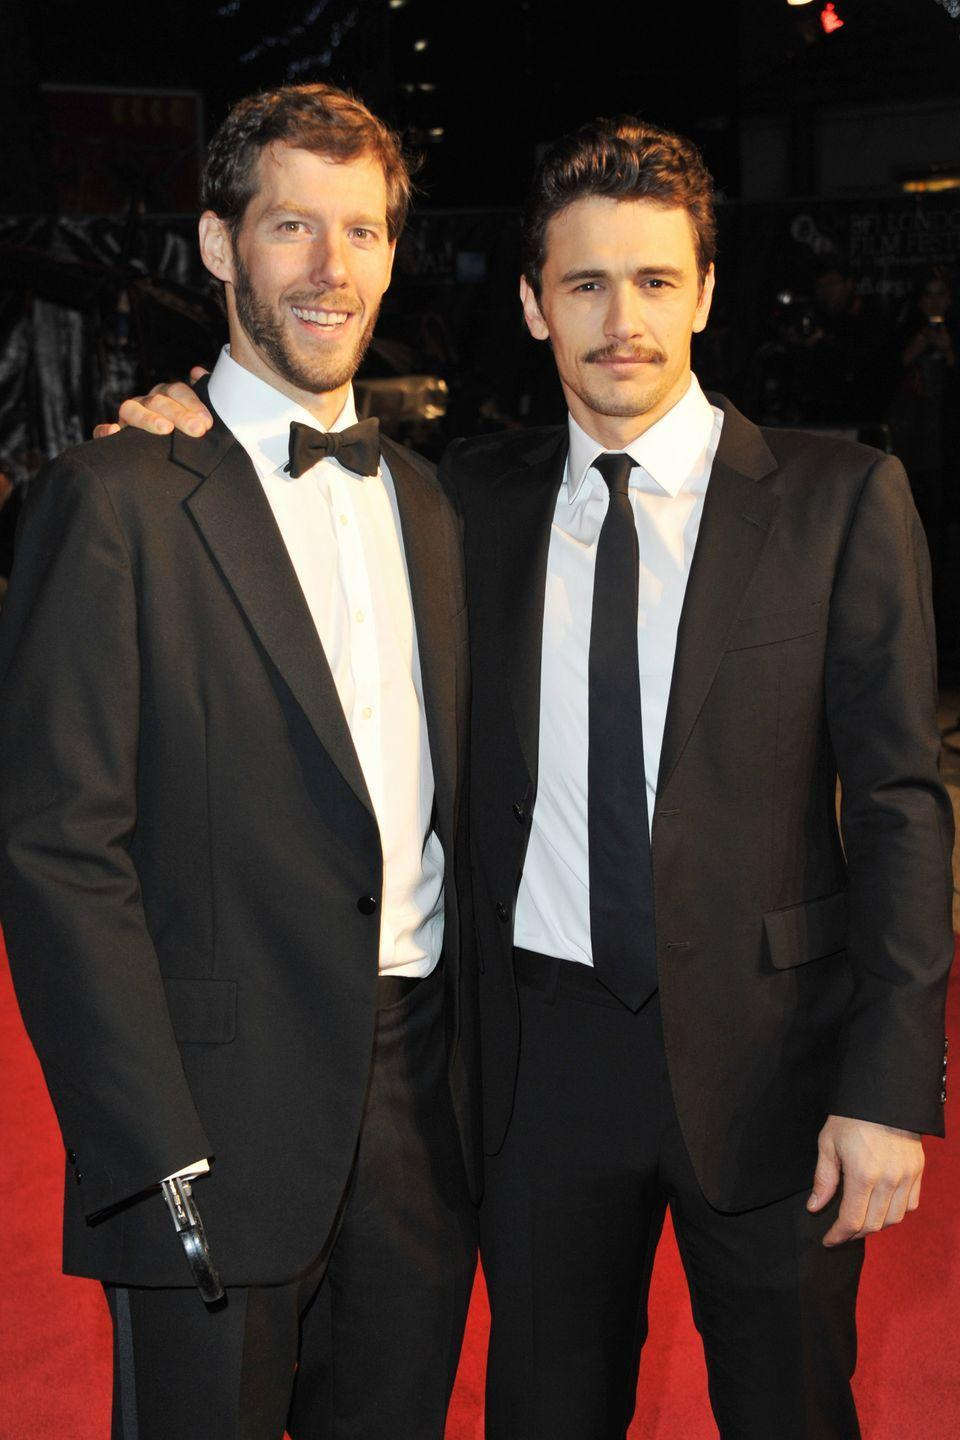 <p>Franco played Ralston in the 2010 movie <em>127 Hours</em>. </p>